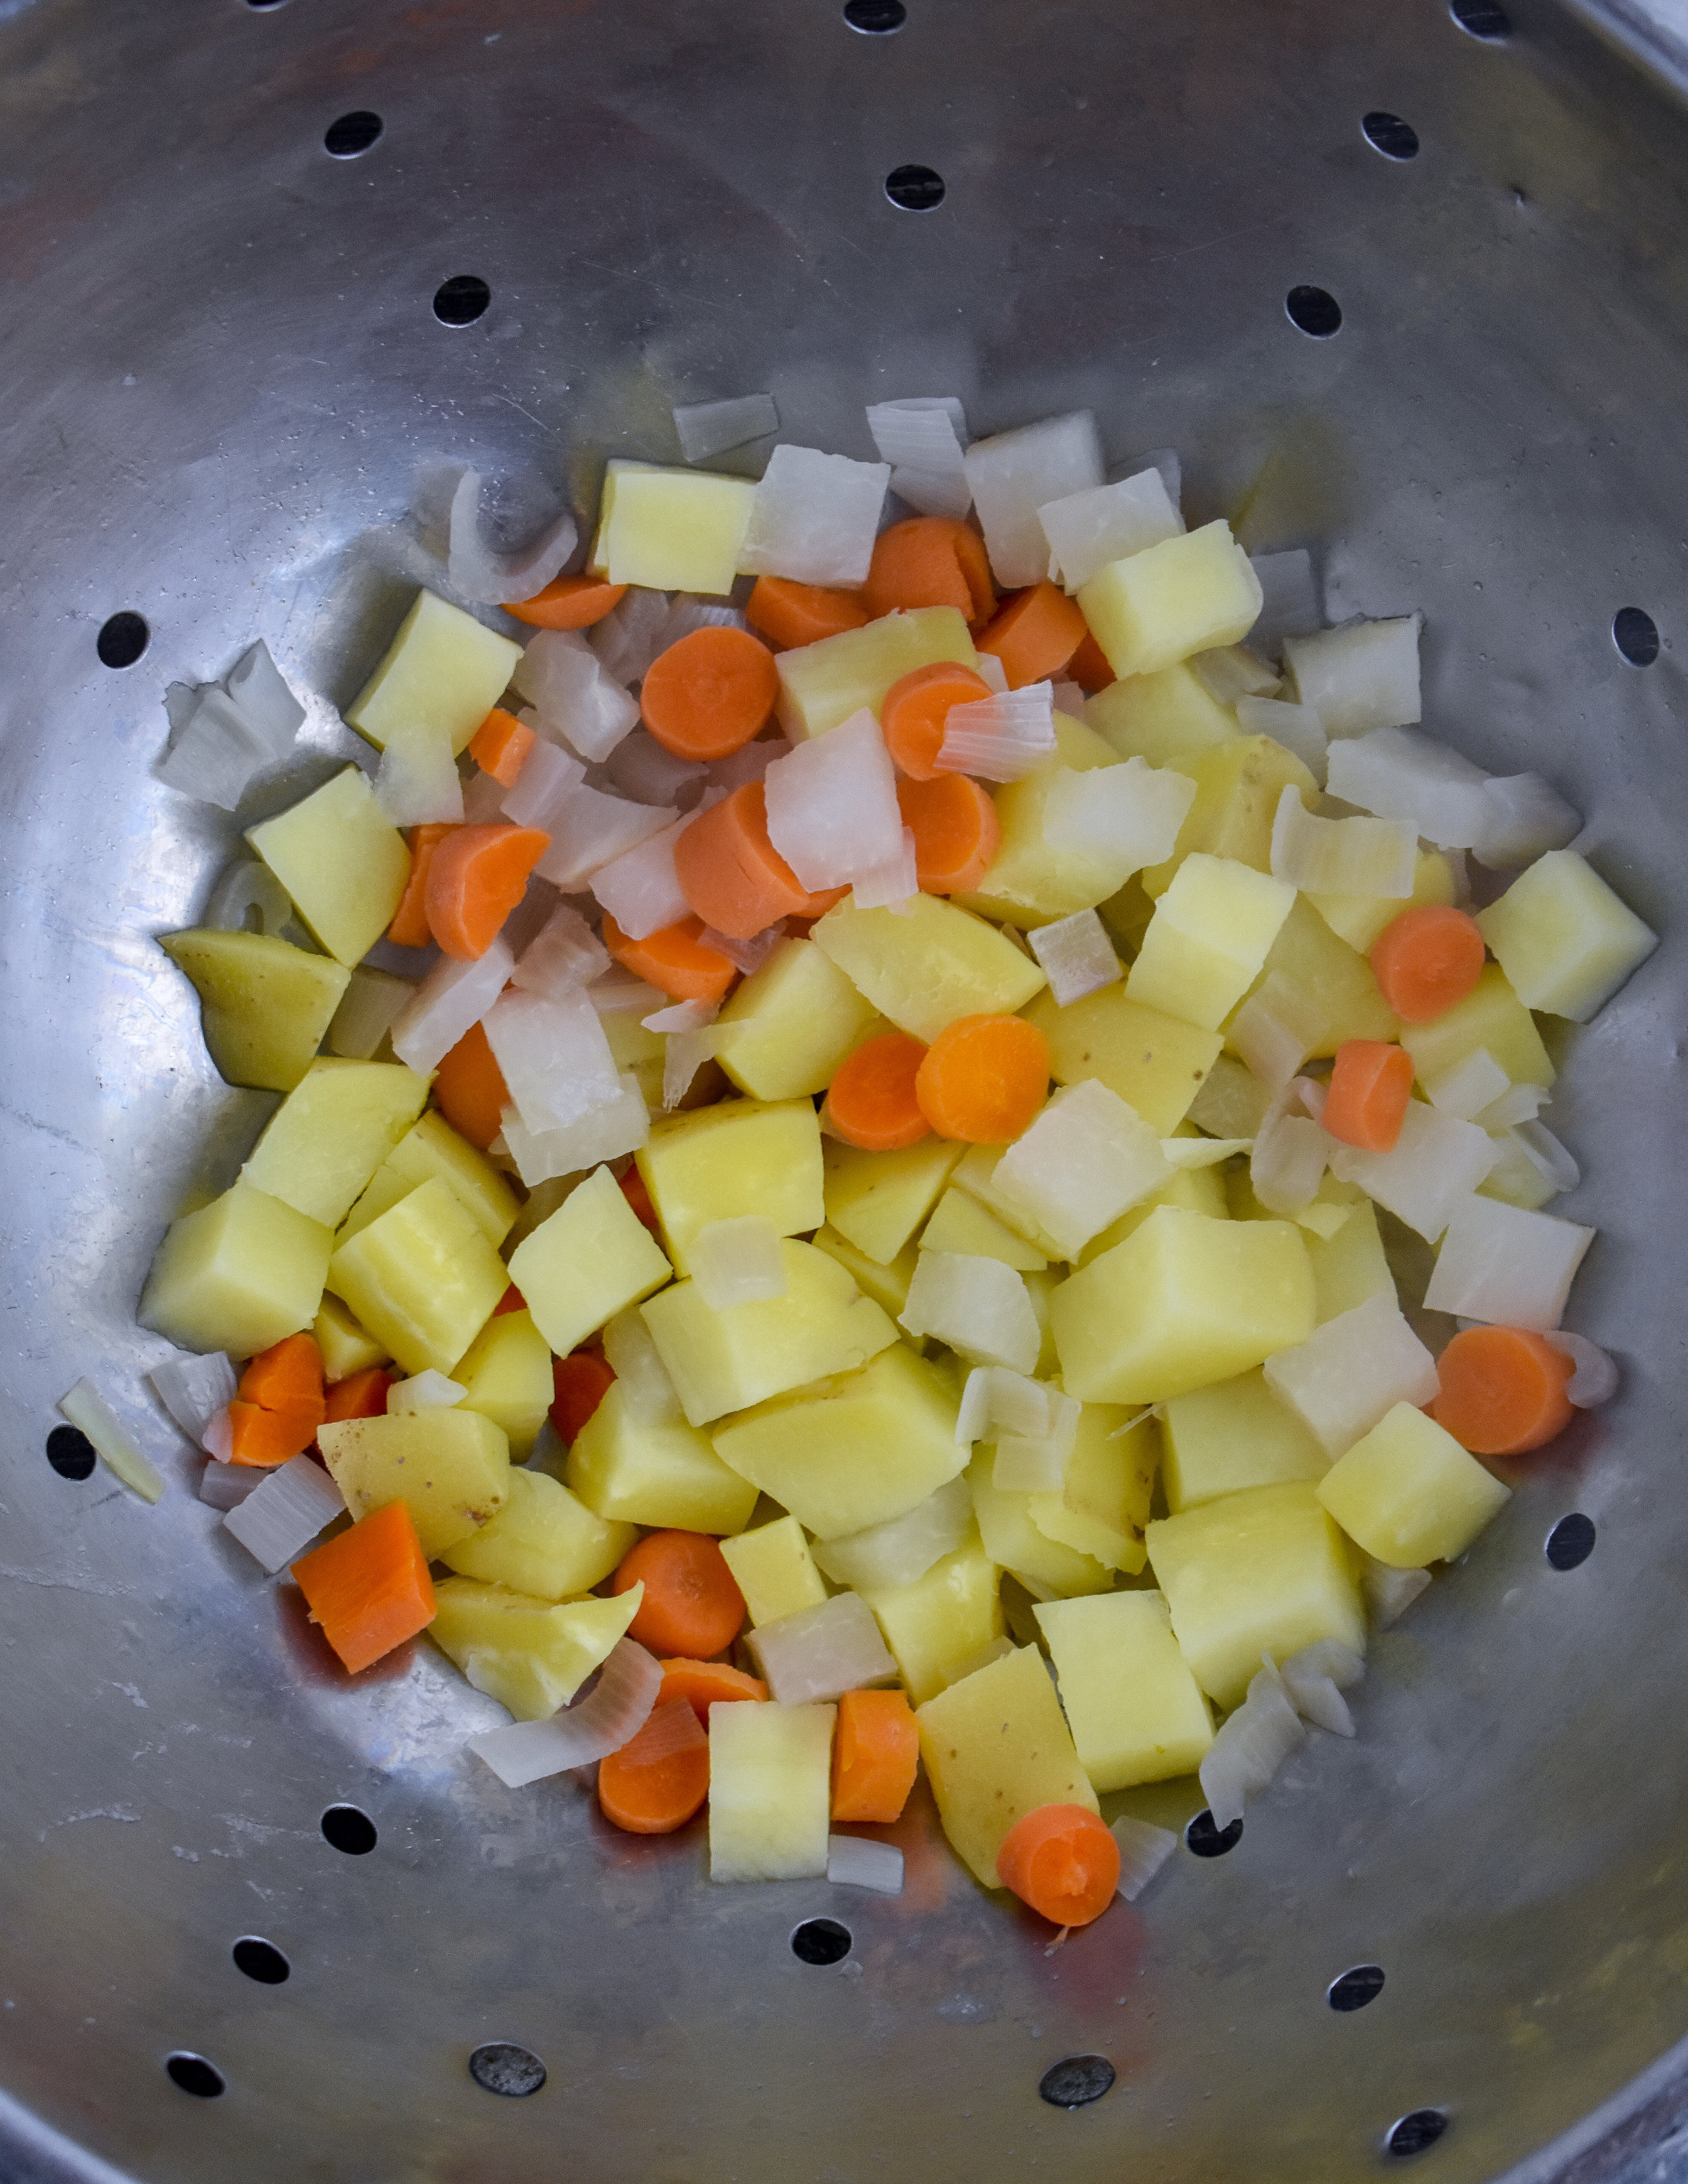 2. In the medium saucepan with 6 cups of water boiling, throw in jicama, potatoes, carrots, and chopped shallots. Boil for 10 minutes. Strain and add to a high-speed blender (or food processor).